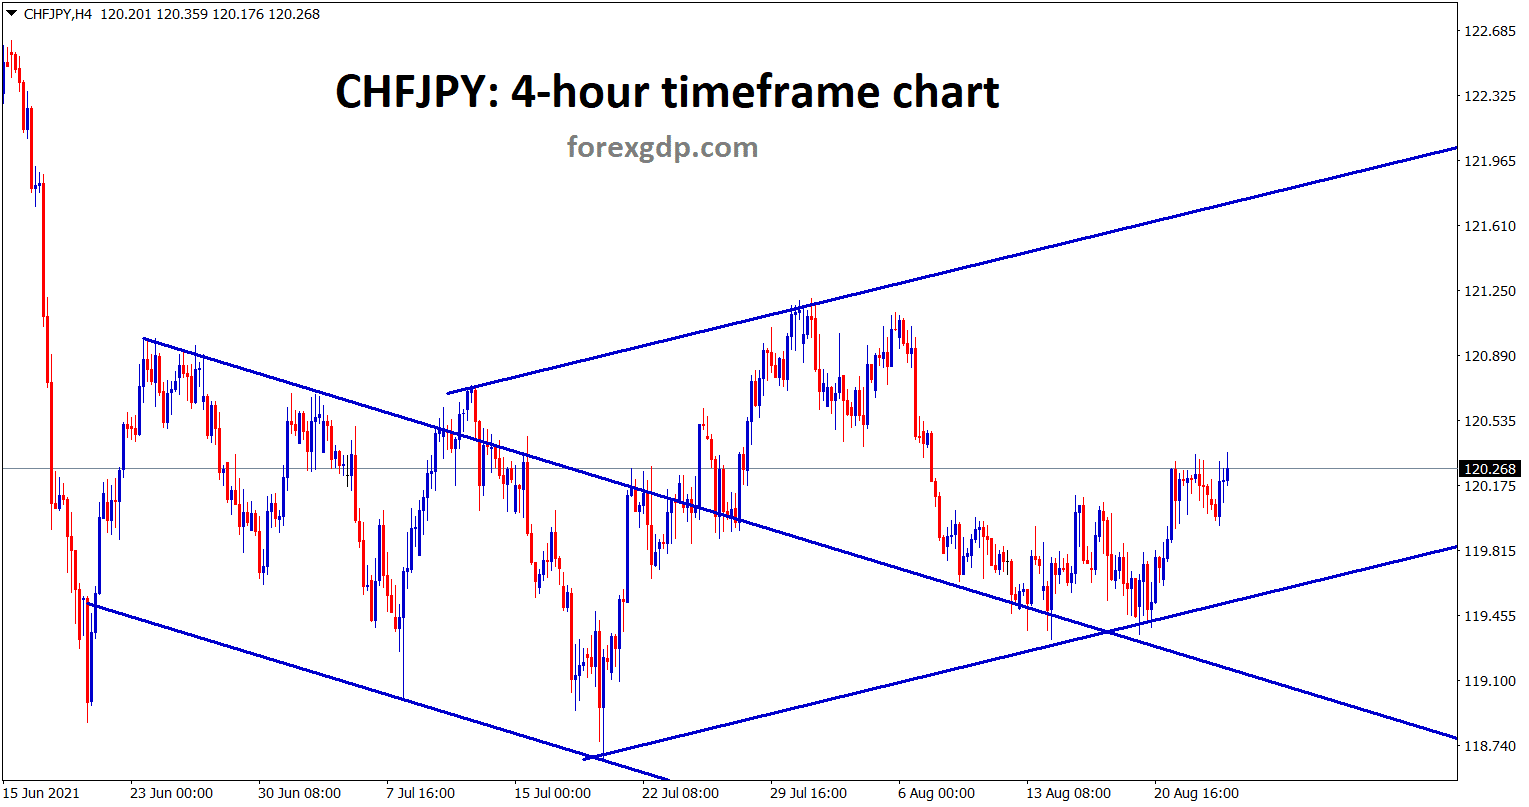 CHFJPY is moving between the ascending channel now after retesting the previous broken ascending channel line